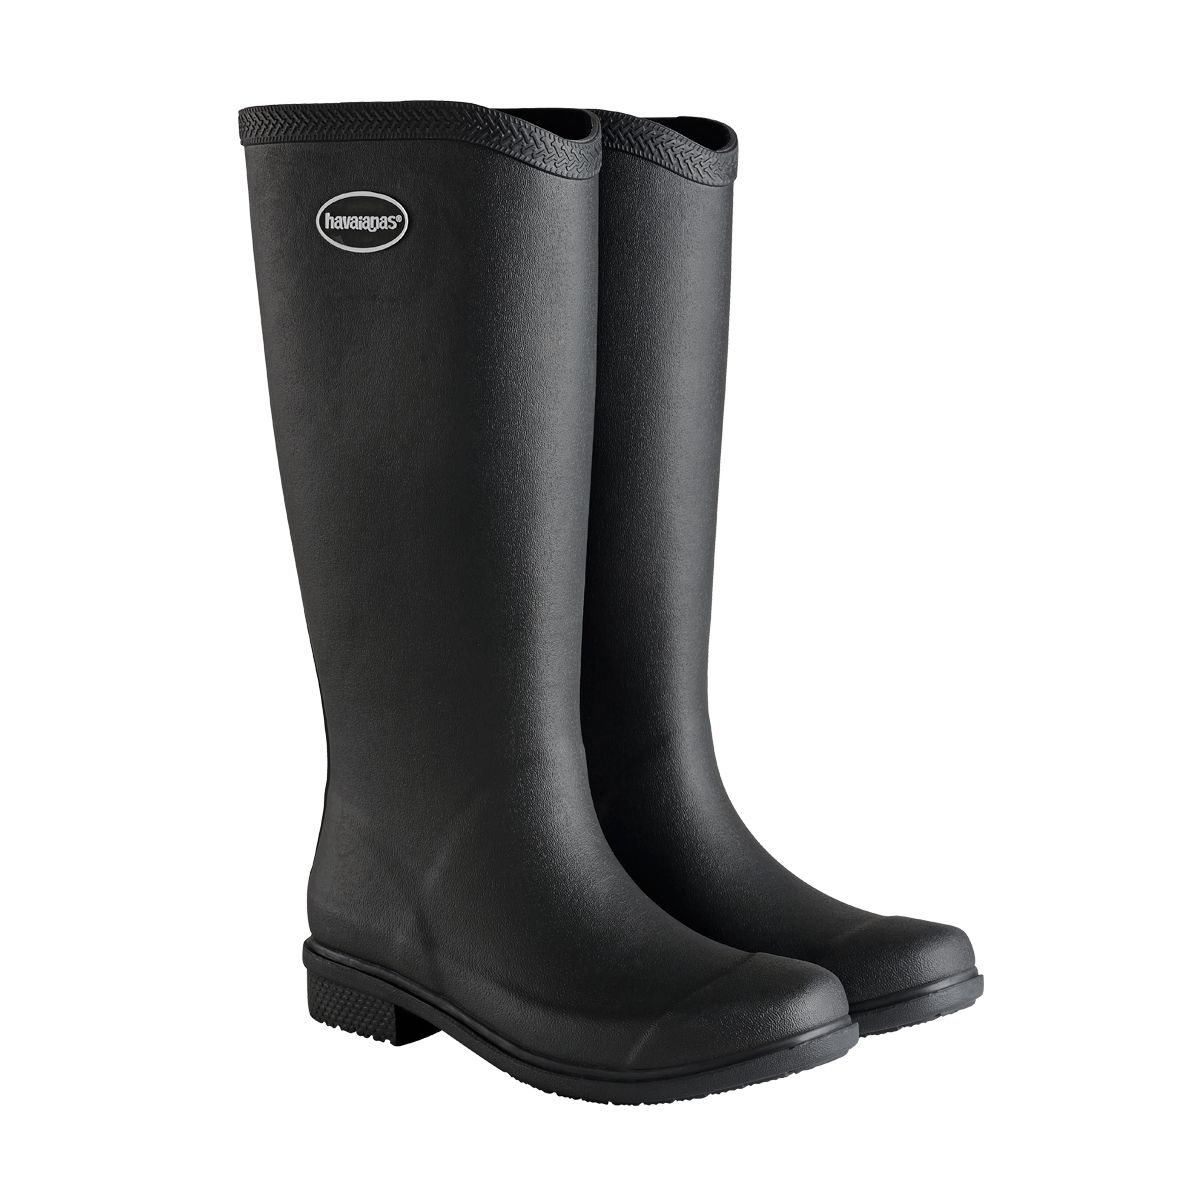 Women's Rain Boots - Free Shipping & Returns at Havaianas | Boots ...